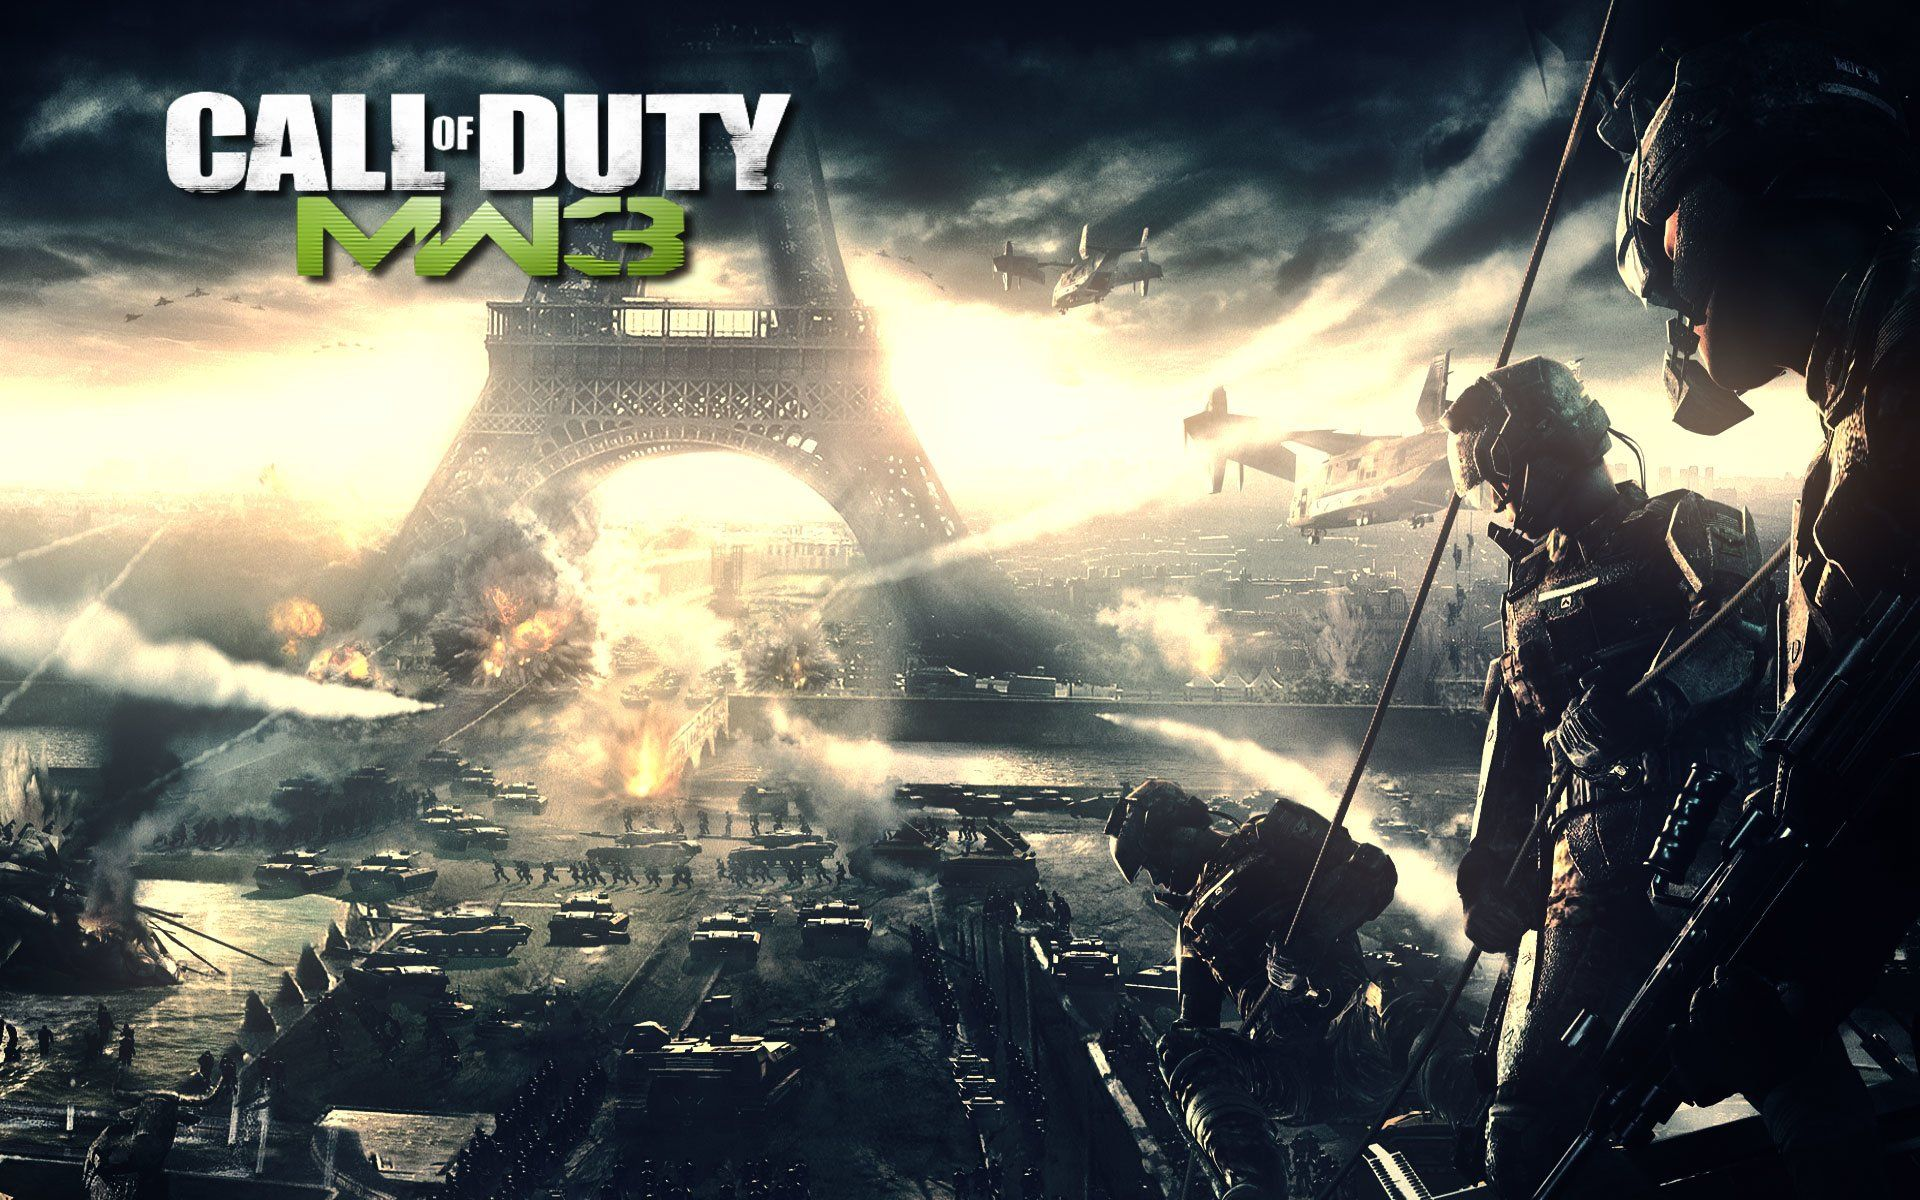 Dota2 wallpaper pc wallpapers gallery tactical gaming - 23 Call Of Duty Modern Warfare 3 Hd Wallpapers Backgrounds